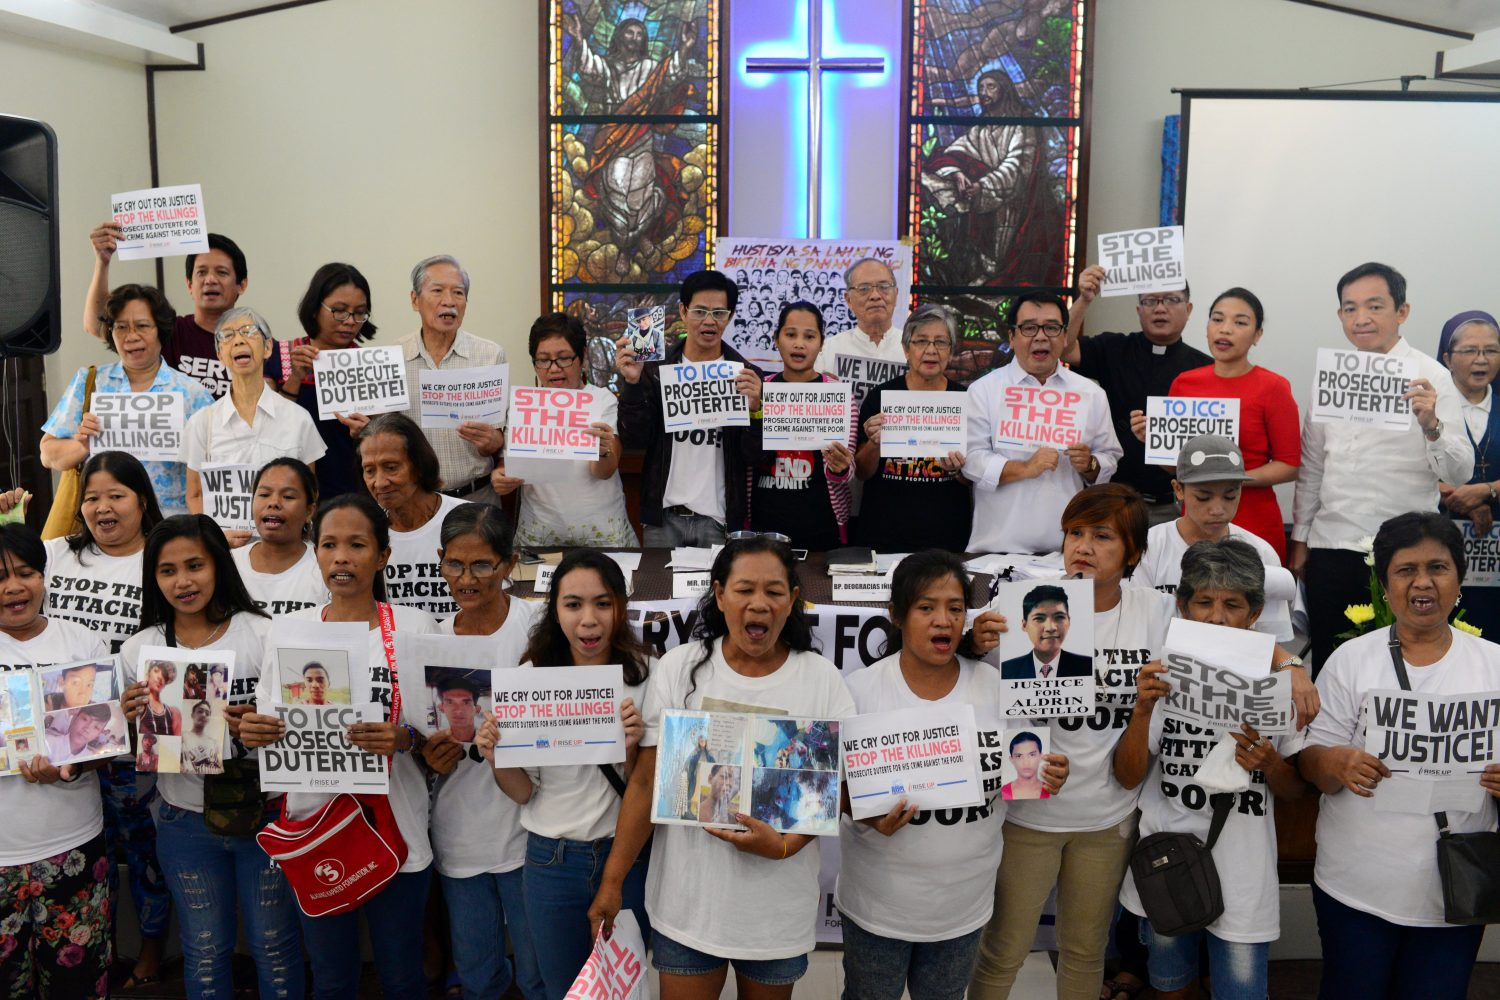 FILE PHOTO: Activists and families of drug war victims display placards during a protest against the war on drugs by President Rodrigo Duterte in Quezon city, Metro Manila in Philippines, August 28, 2018. REUTERS/Eloisa Lopez